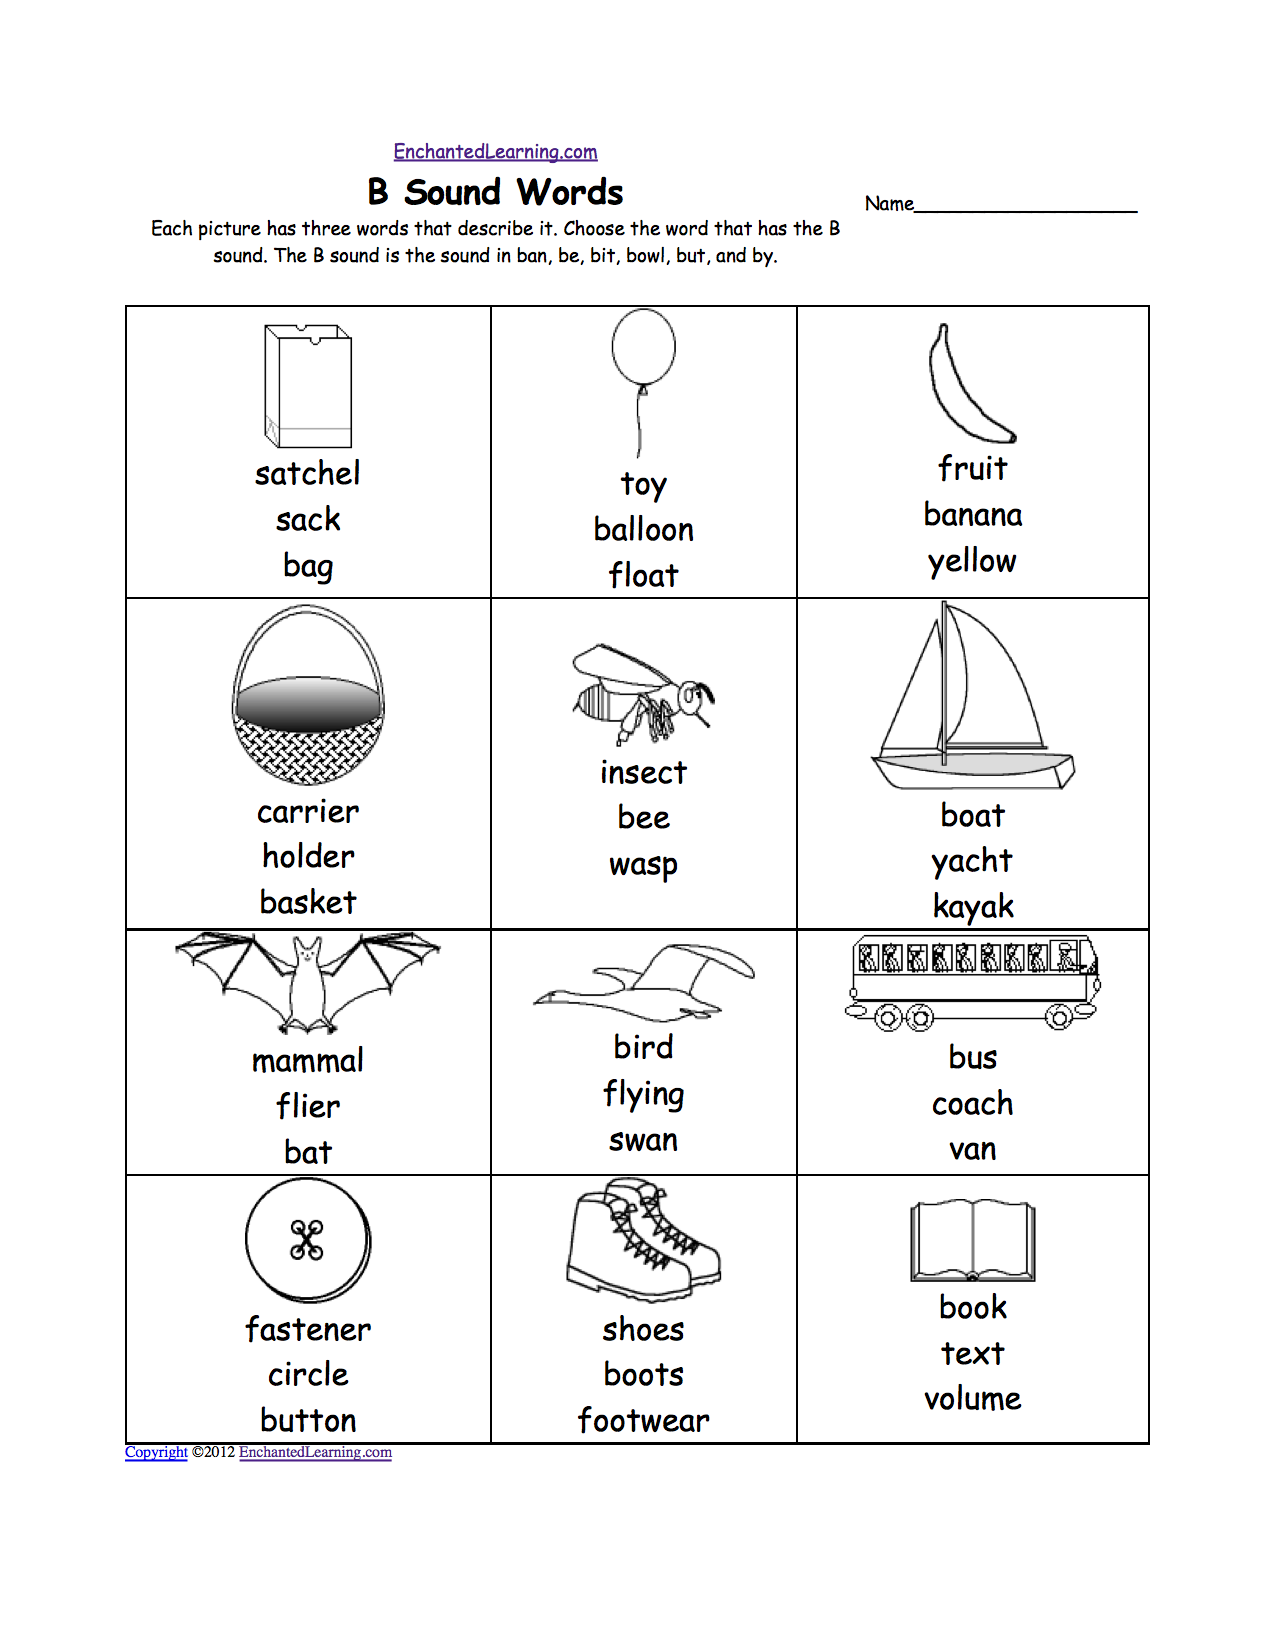 Aldiablosus  Splendid Phonics Worksheets Multiple Choice Worksheets To Print  With Lovely Quotbquot Sound Phonics Worksheet Multiple Choice Each Picture Has Three Words That Describe It Choose The Word That Has A Quotbquot Sound The Quotbquot Sound Is The Sound  With Enchanting Inferential Questions Worksheets Also Inequality Equations Worksheets In Addition Contractions Worksheet Rd Grade And Pythagorean Word Problems Worksheet As Well As Dependant Verification Worksheet Additionally Flashback Worksheet From Enchantedlearningcom With Aldiablosus  Lovely Phonics Worksheets Multiple Choice Worksheets To Print  With Enchanting Quotbquot Sound Phonics Worksheet Multiple Choice Each Picture Has Three Words That Describe It Choose The Word That Has A Quotbquot Sound The Quotbquot Sound Is The Sound  And Splendid Inferential Questions Worksheets Also Inequality Equations Worksheets In Addition Contractions Worksheet Rd Grade From Enchantedlearningcom